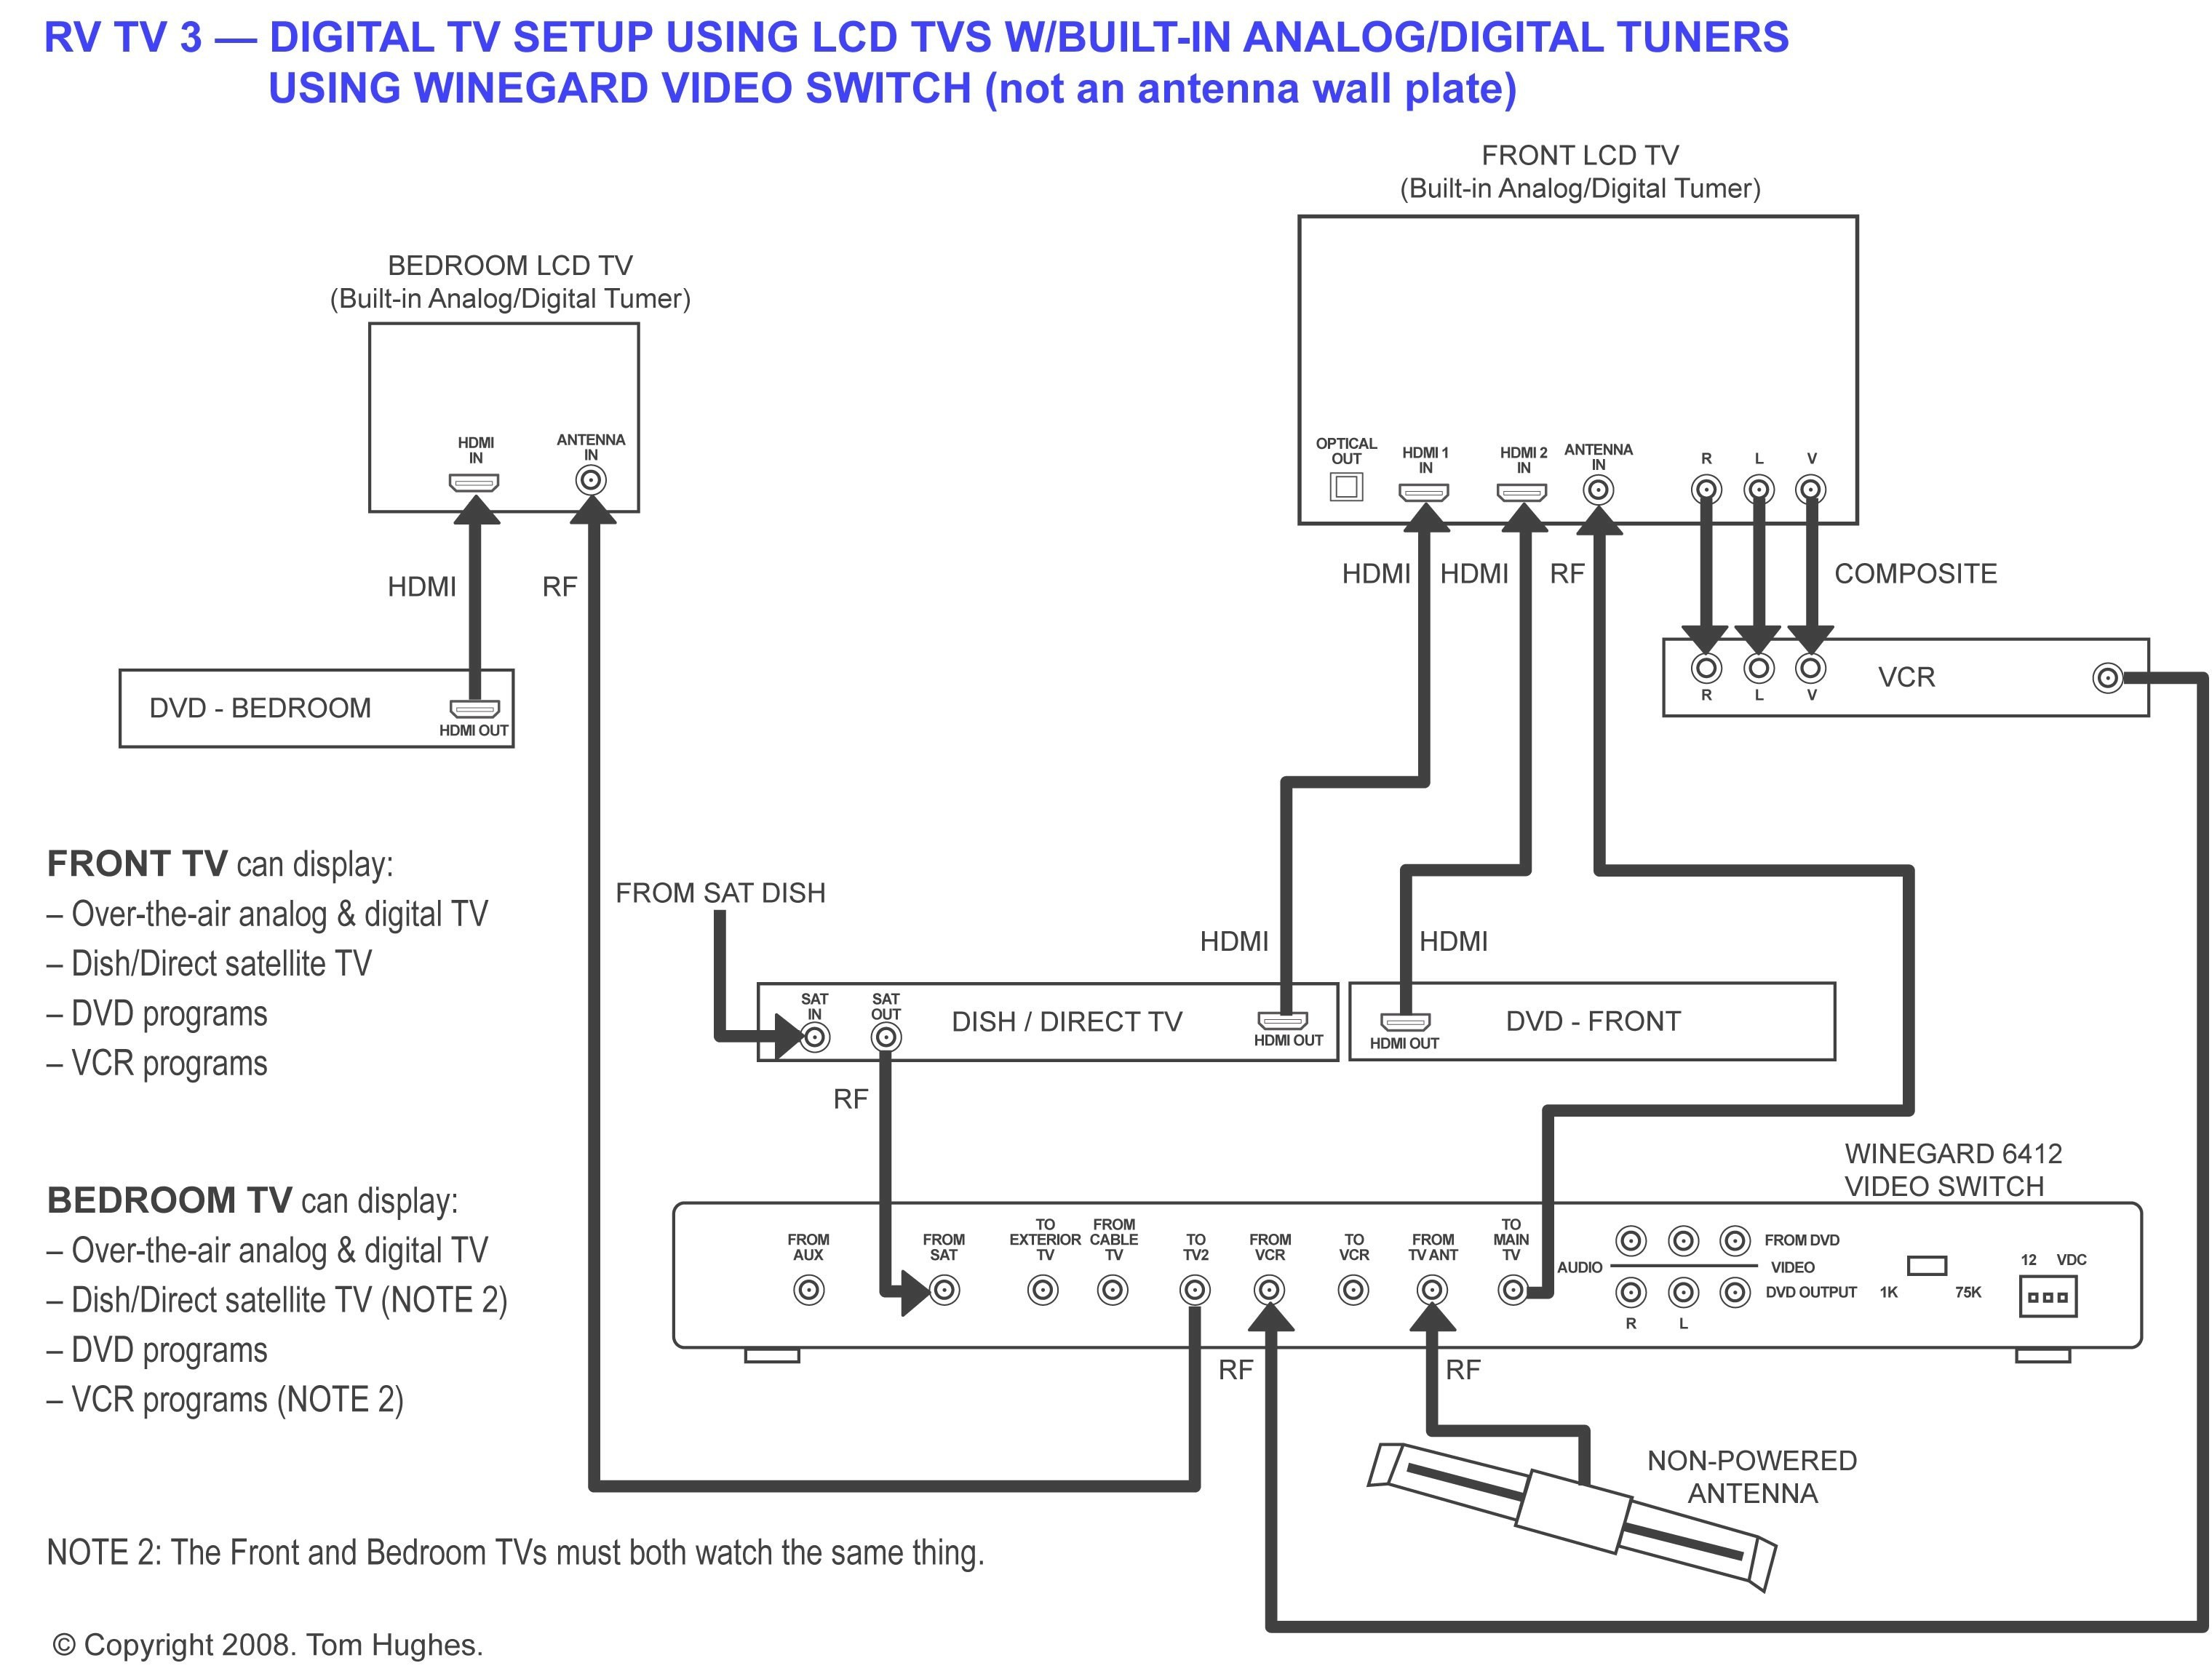 Cable Tv Wiring Diagrams Elegant Rv Cable and Satellite Wiring Diagram Diagram Of Cable Tv Wiring Diagrams